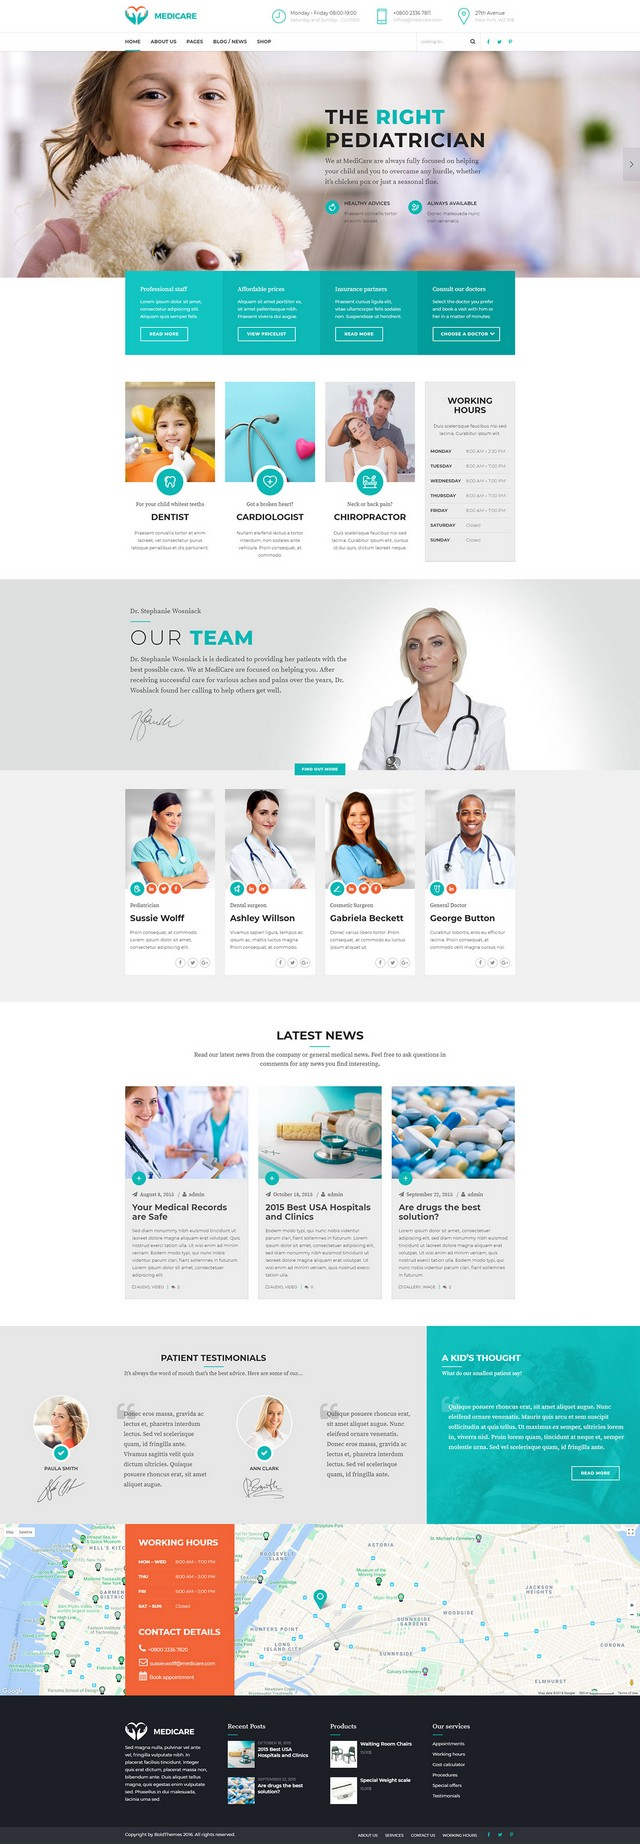 health and medical wordpress theme Medicare main homepage layout for clinic